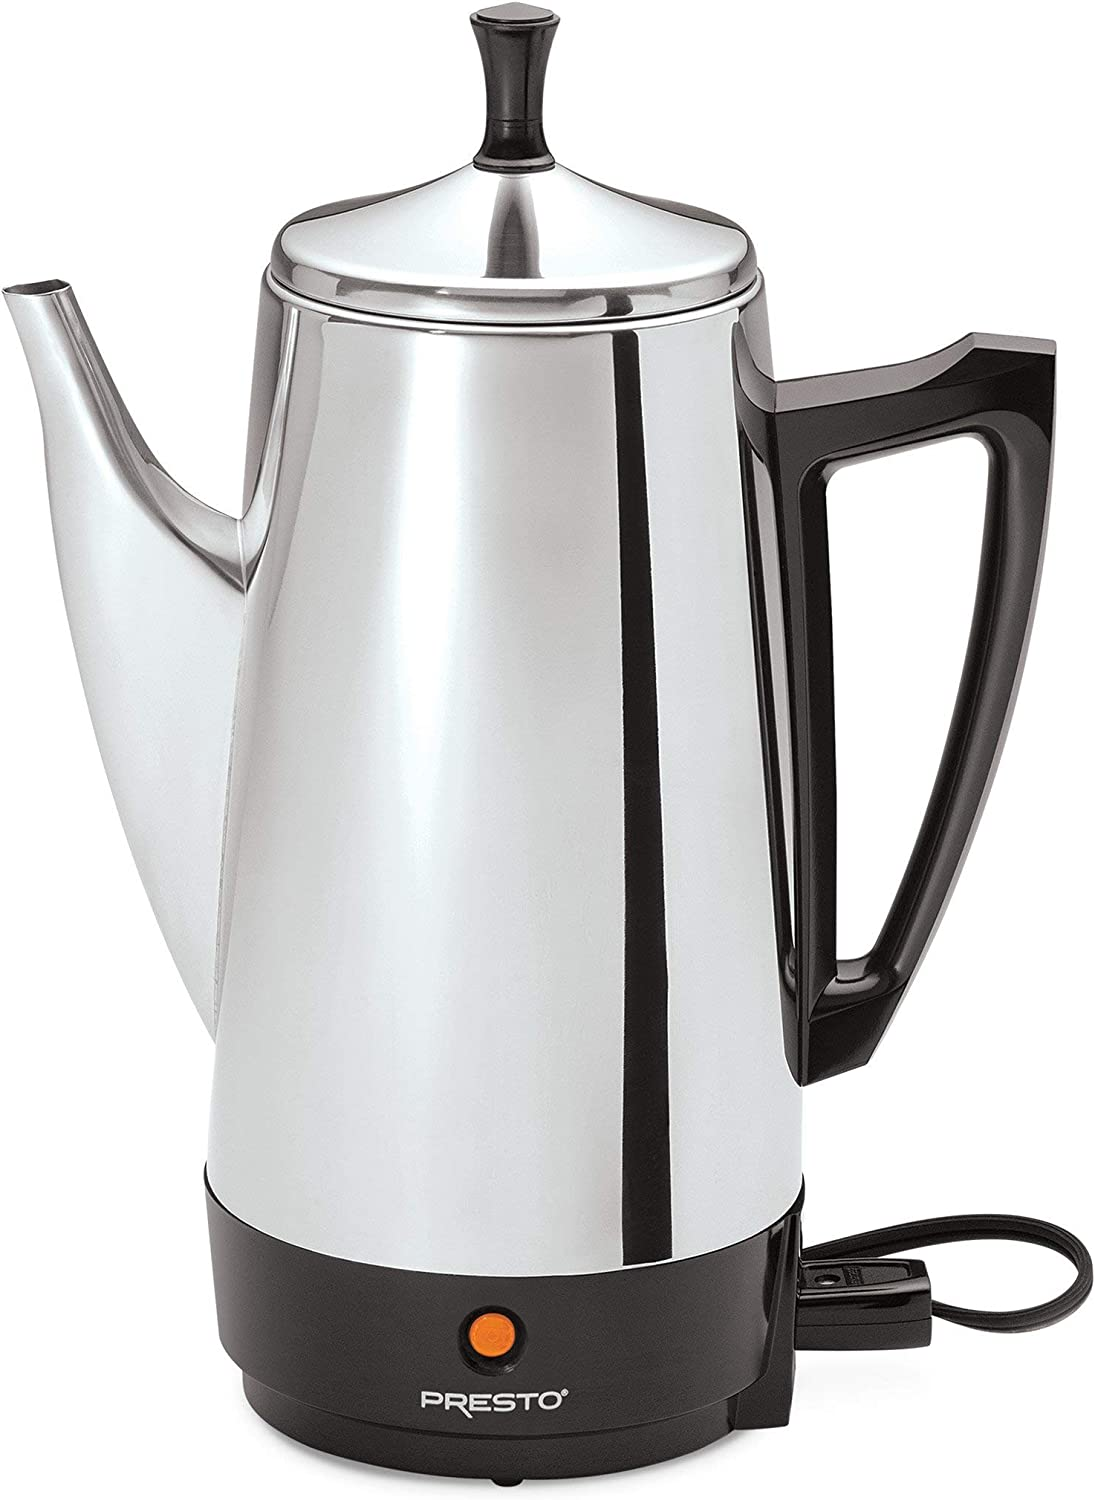 Starfrit 024001-002-0000 12-Cup Electric Drip Coffee Maker, Black Silver